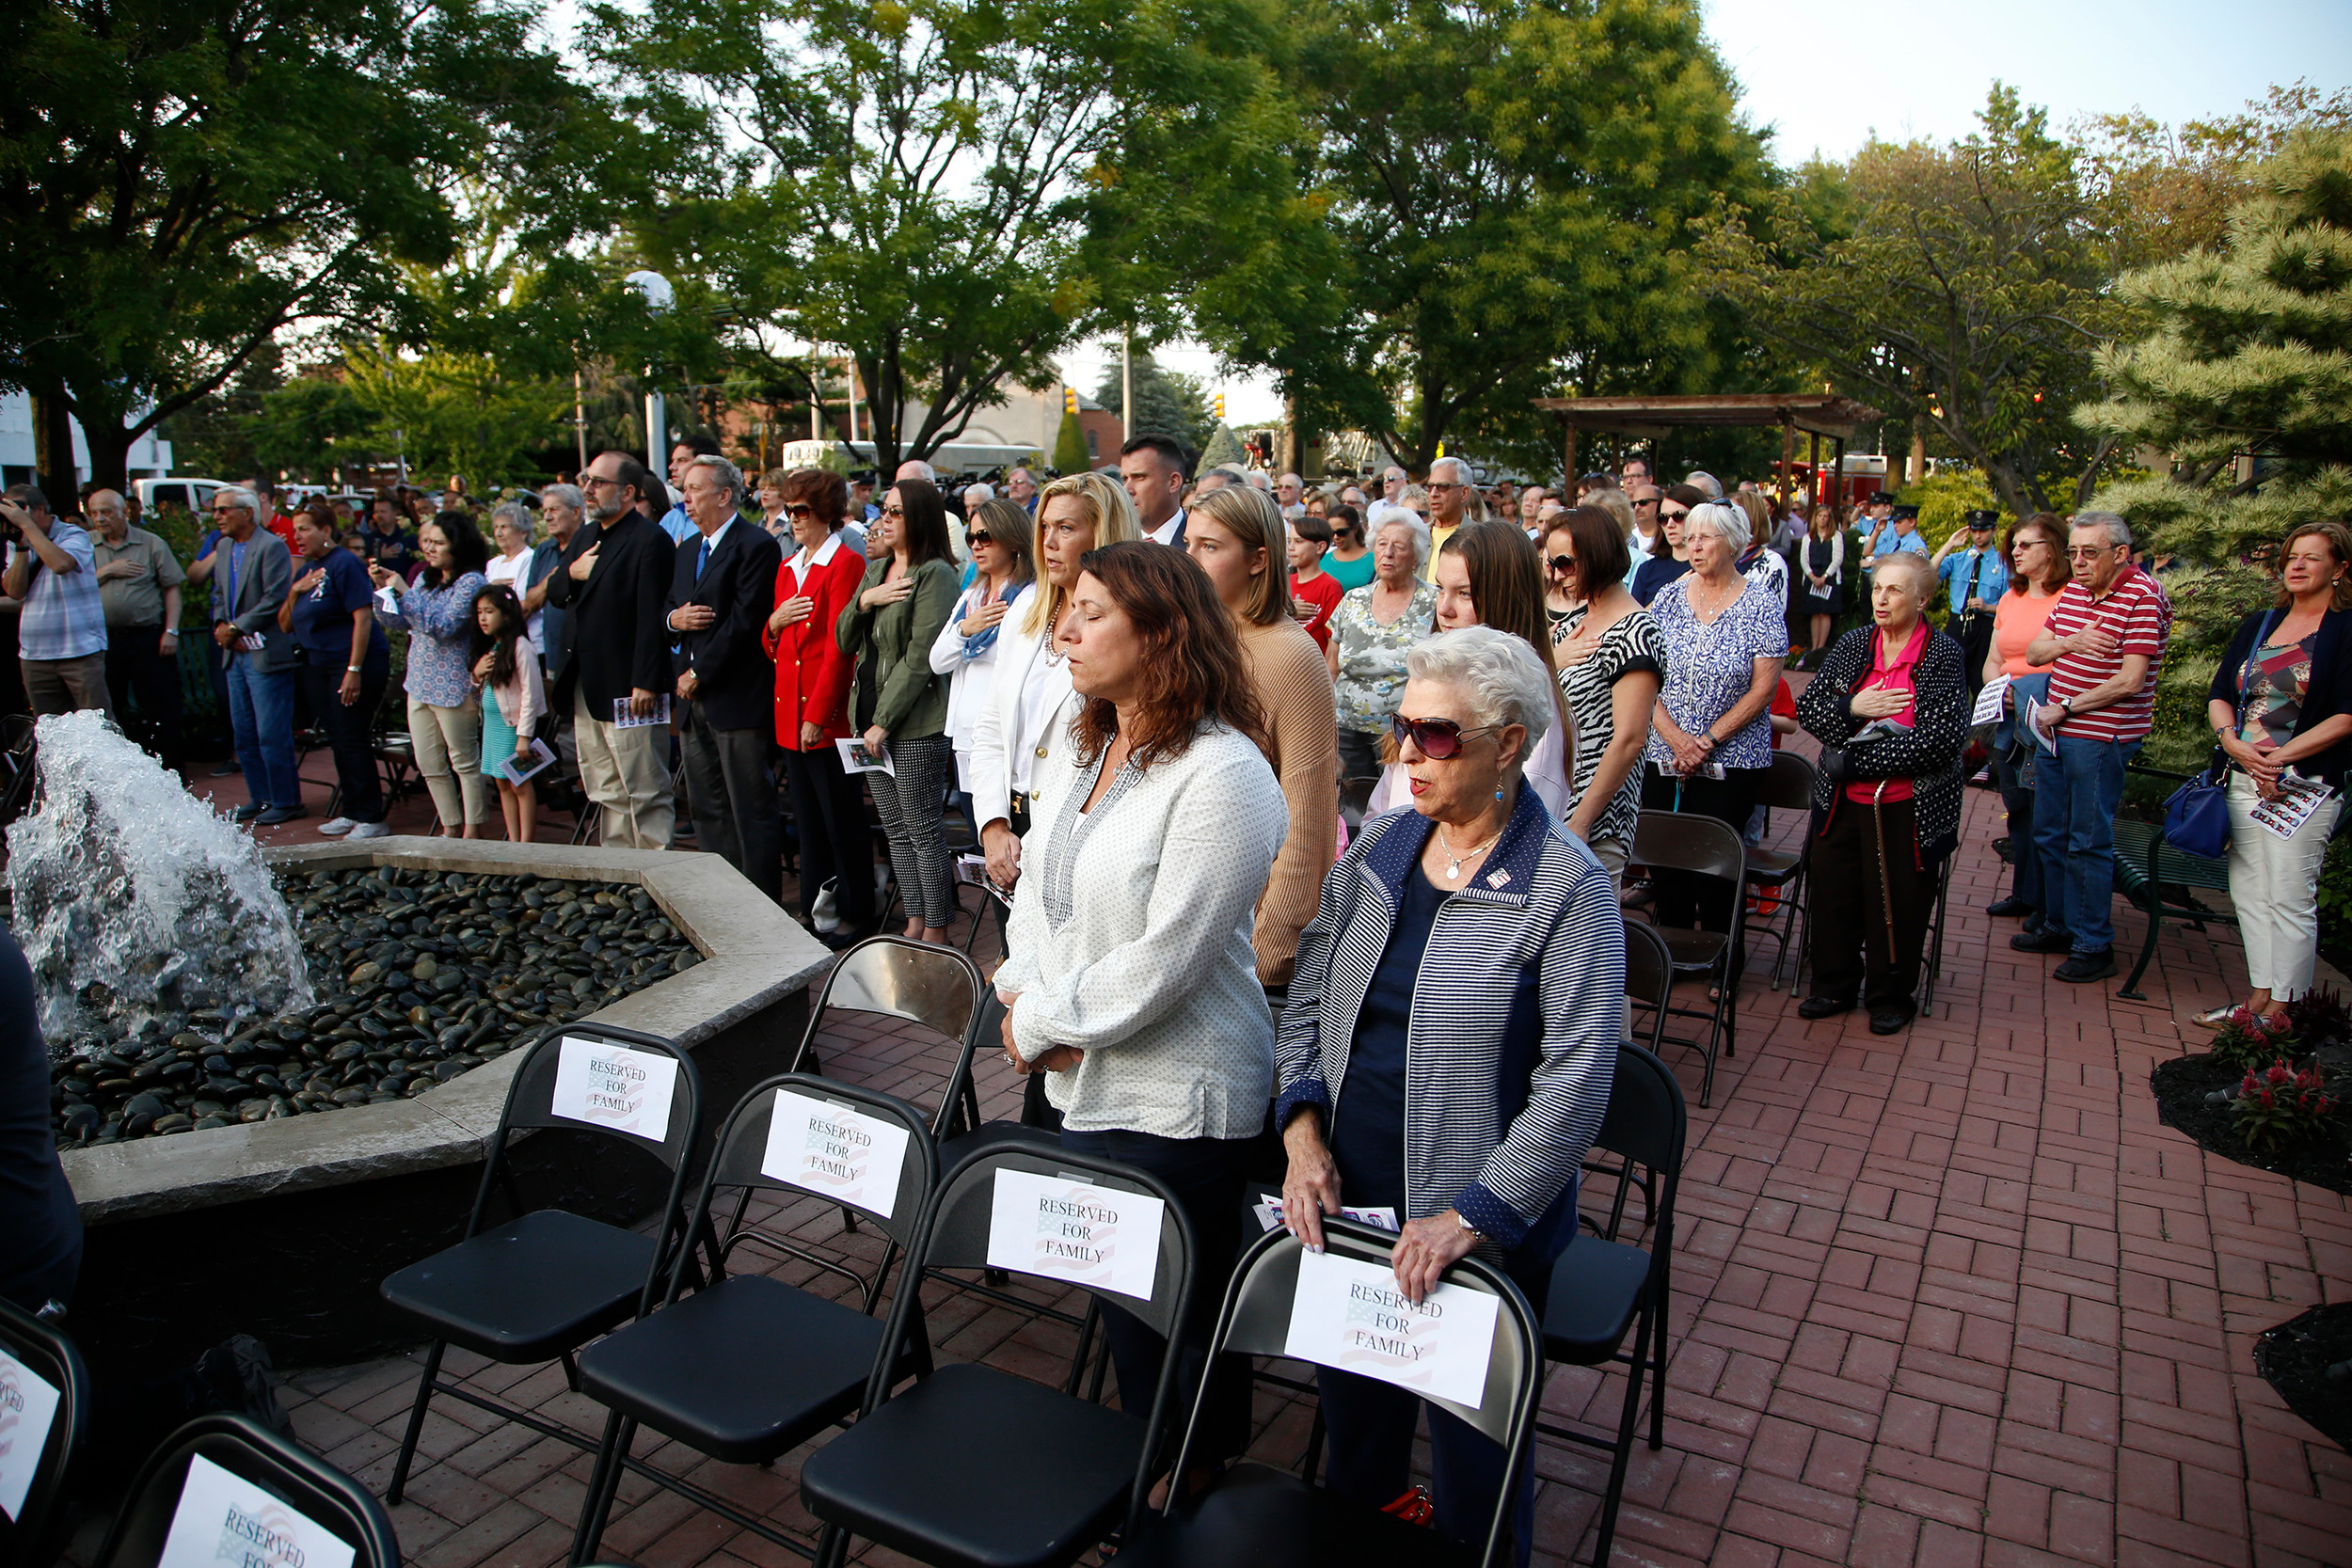 Dozens of Lynbrook residents gathered at the village's ceremony to remember the victims of the terrorist attacks of Sept. 11, 2001. (At left)